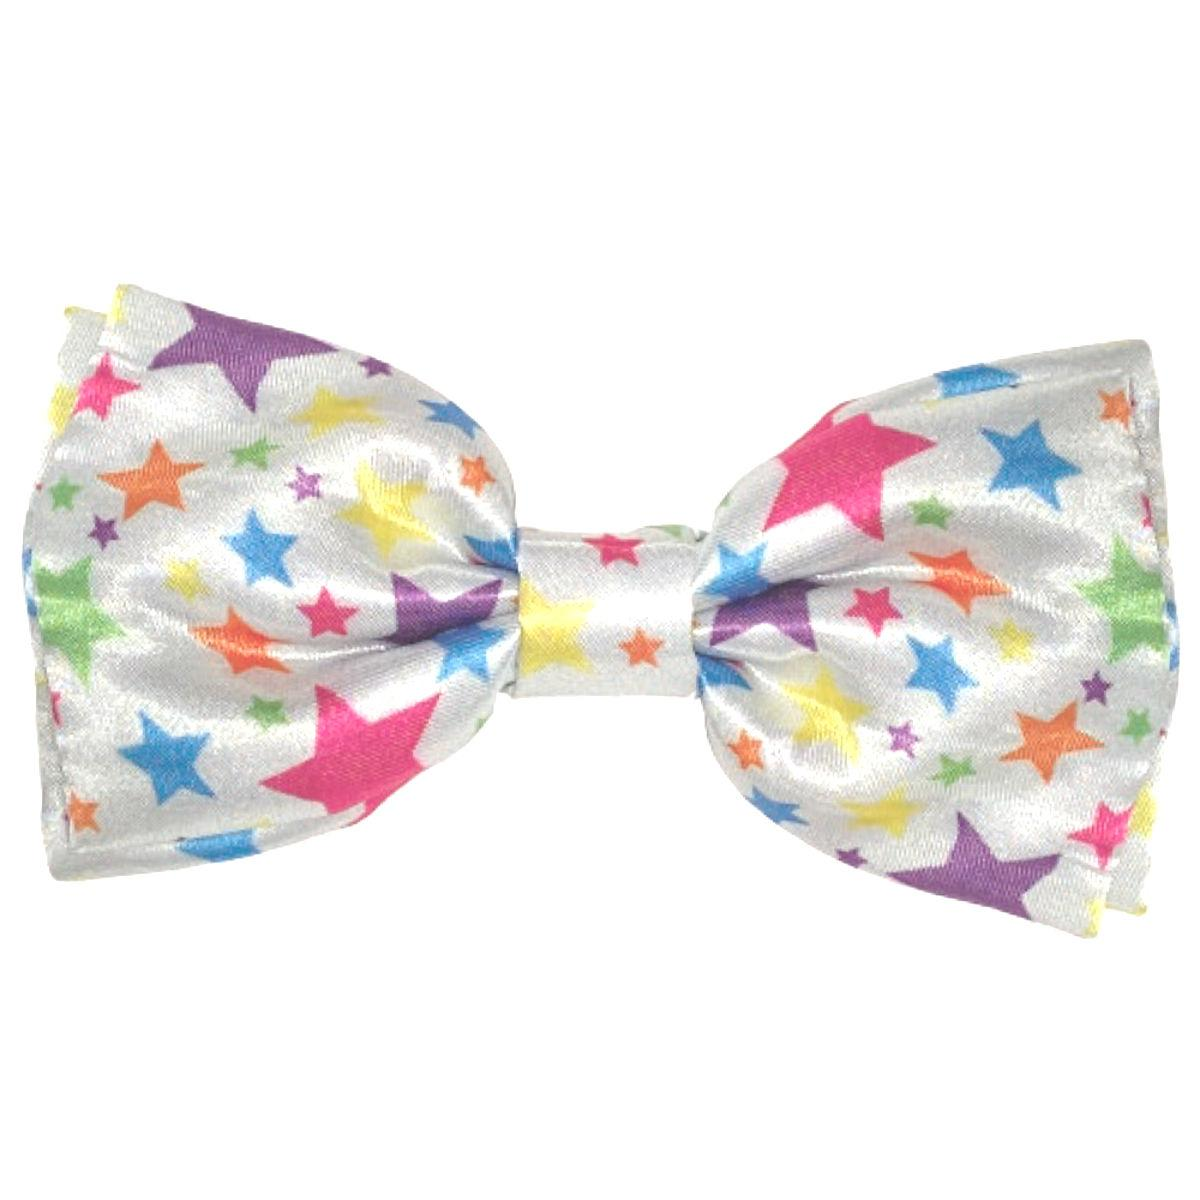 Huxley & Kent Dog and Cat Bow Tie Collar Attachment - Superstars